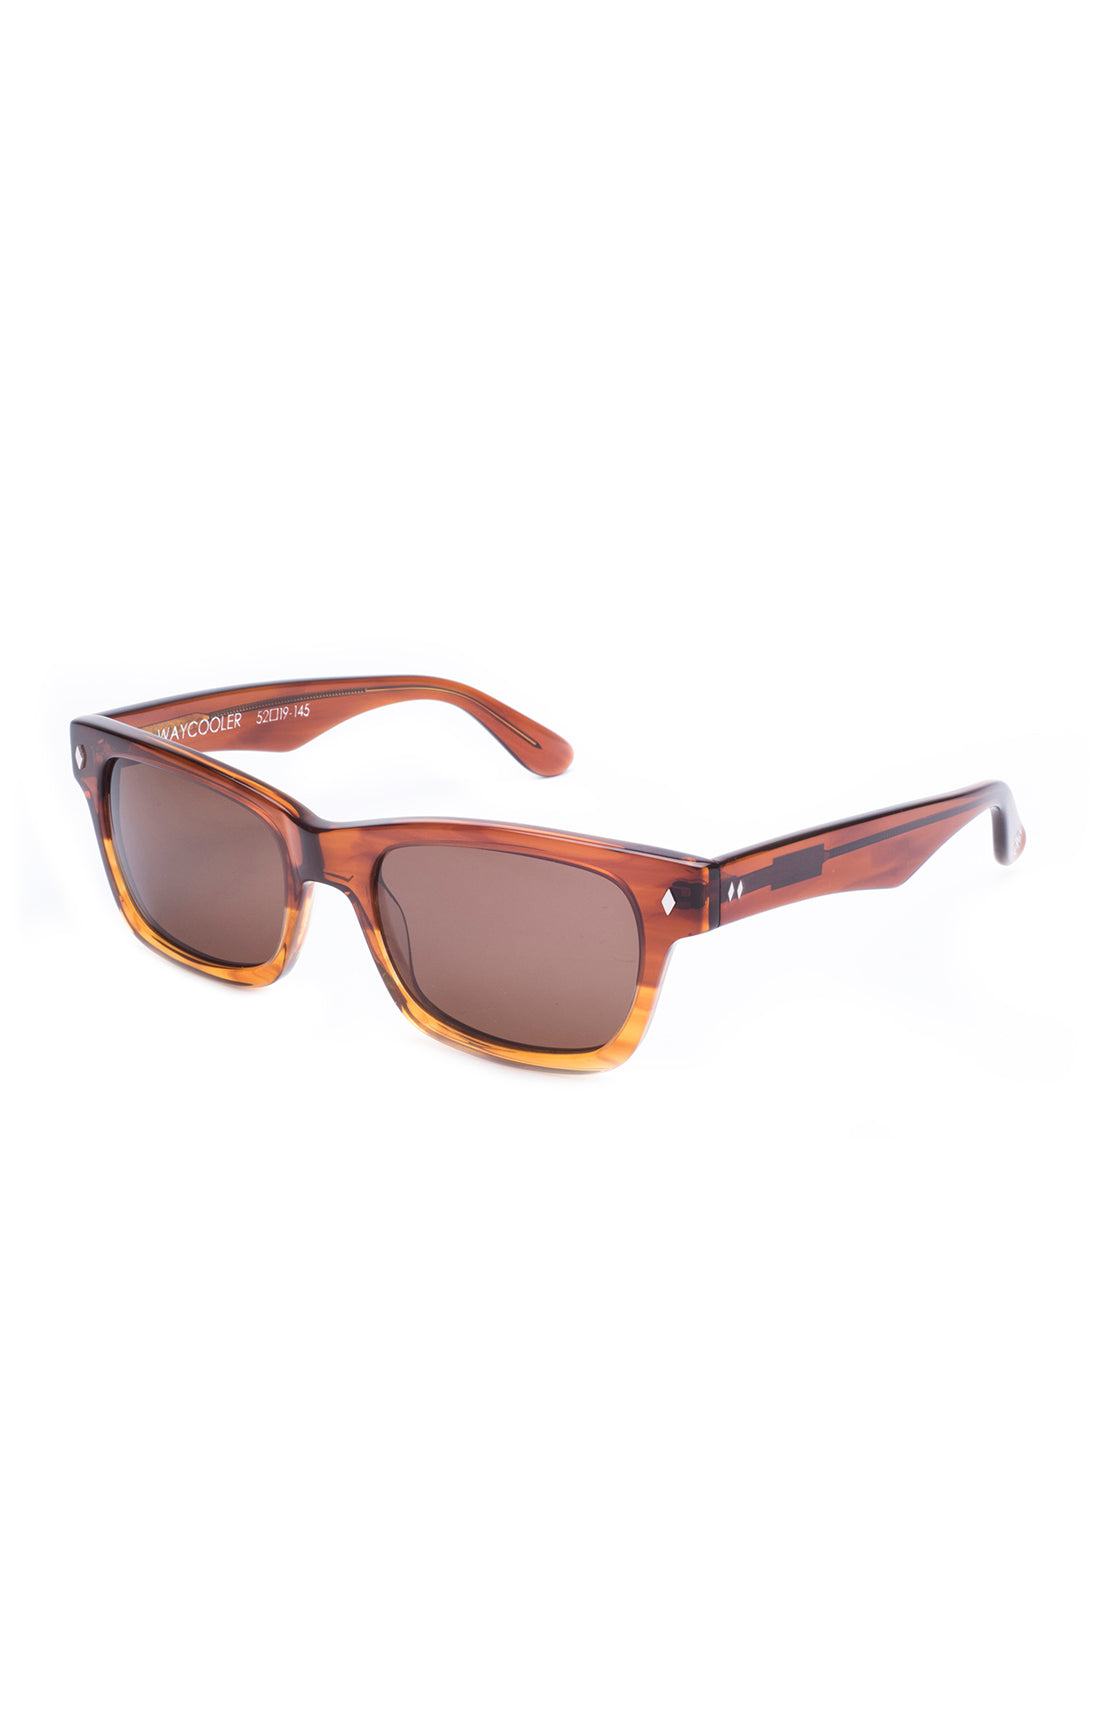 The WAYCOOLER Sunglasses by Tres Noir - Amber Frames w/ Brown CR-39 ...